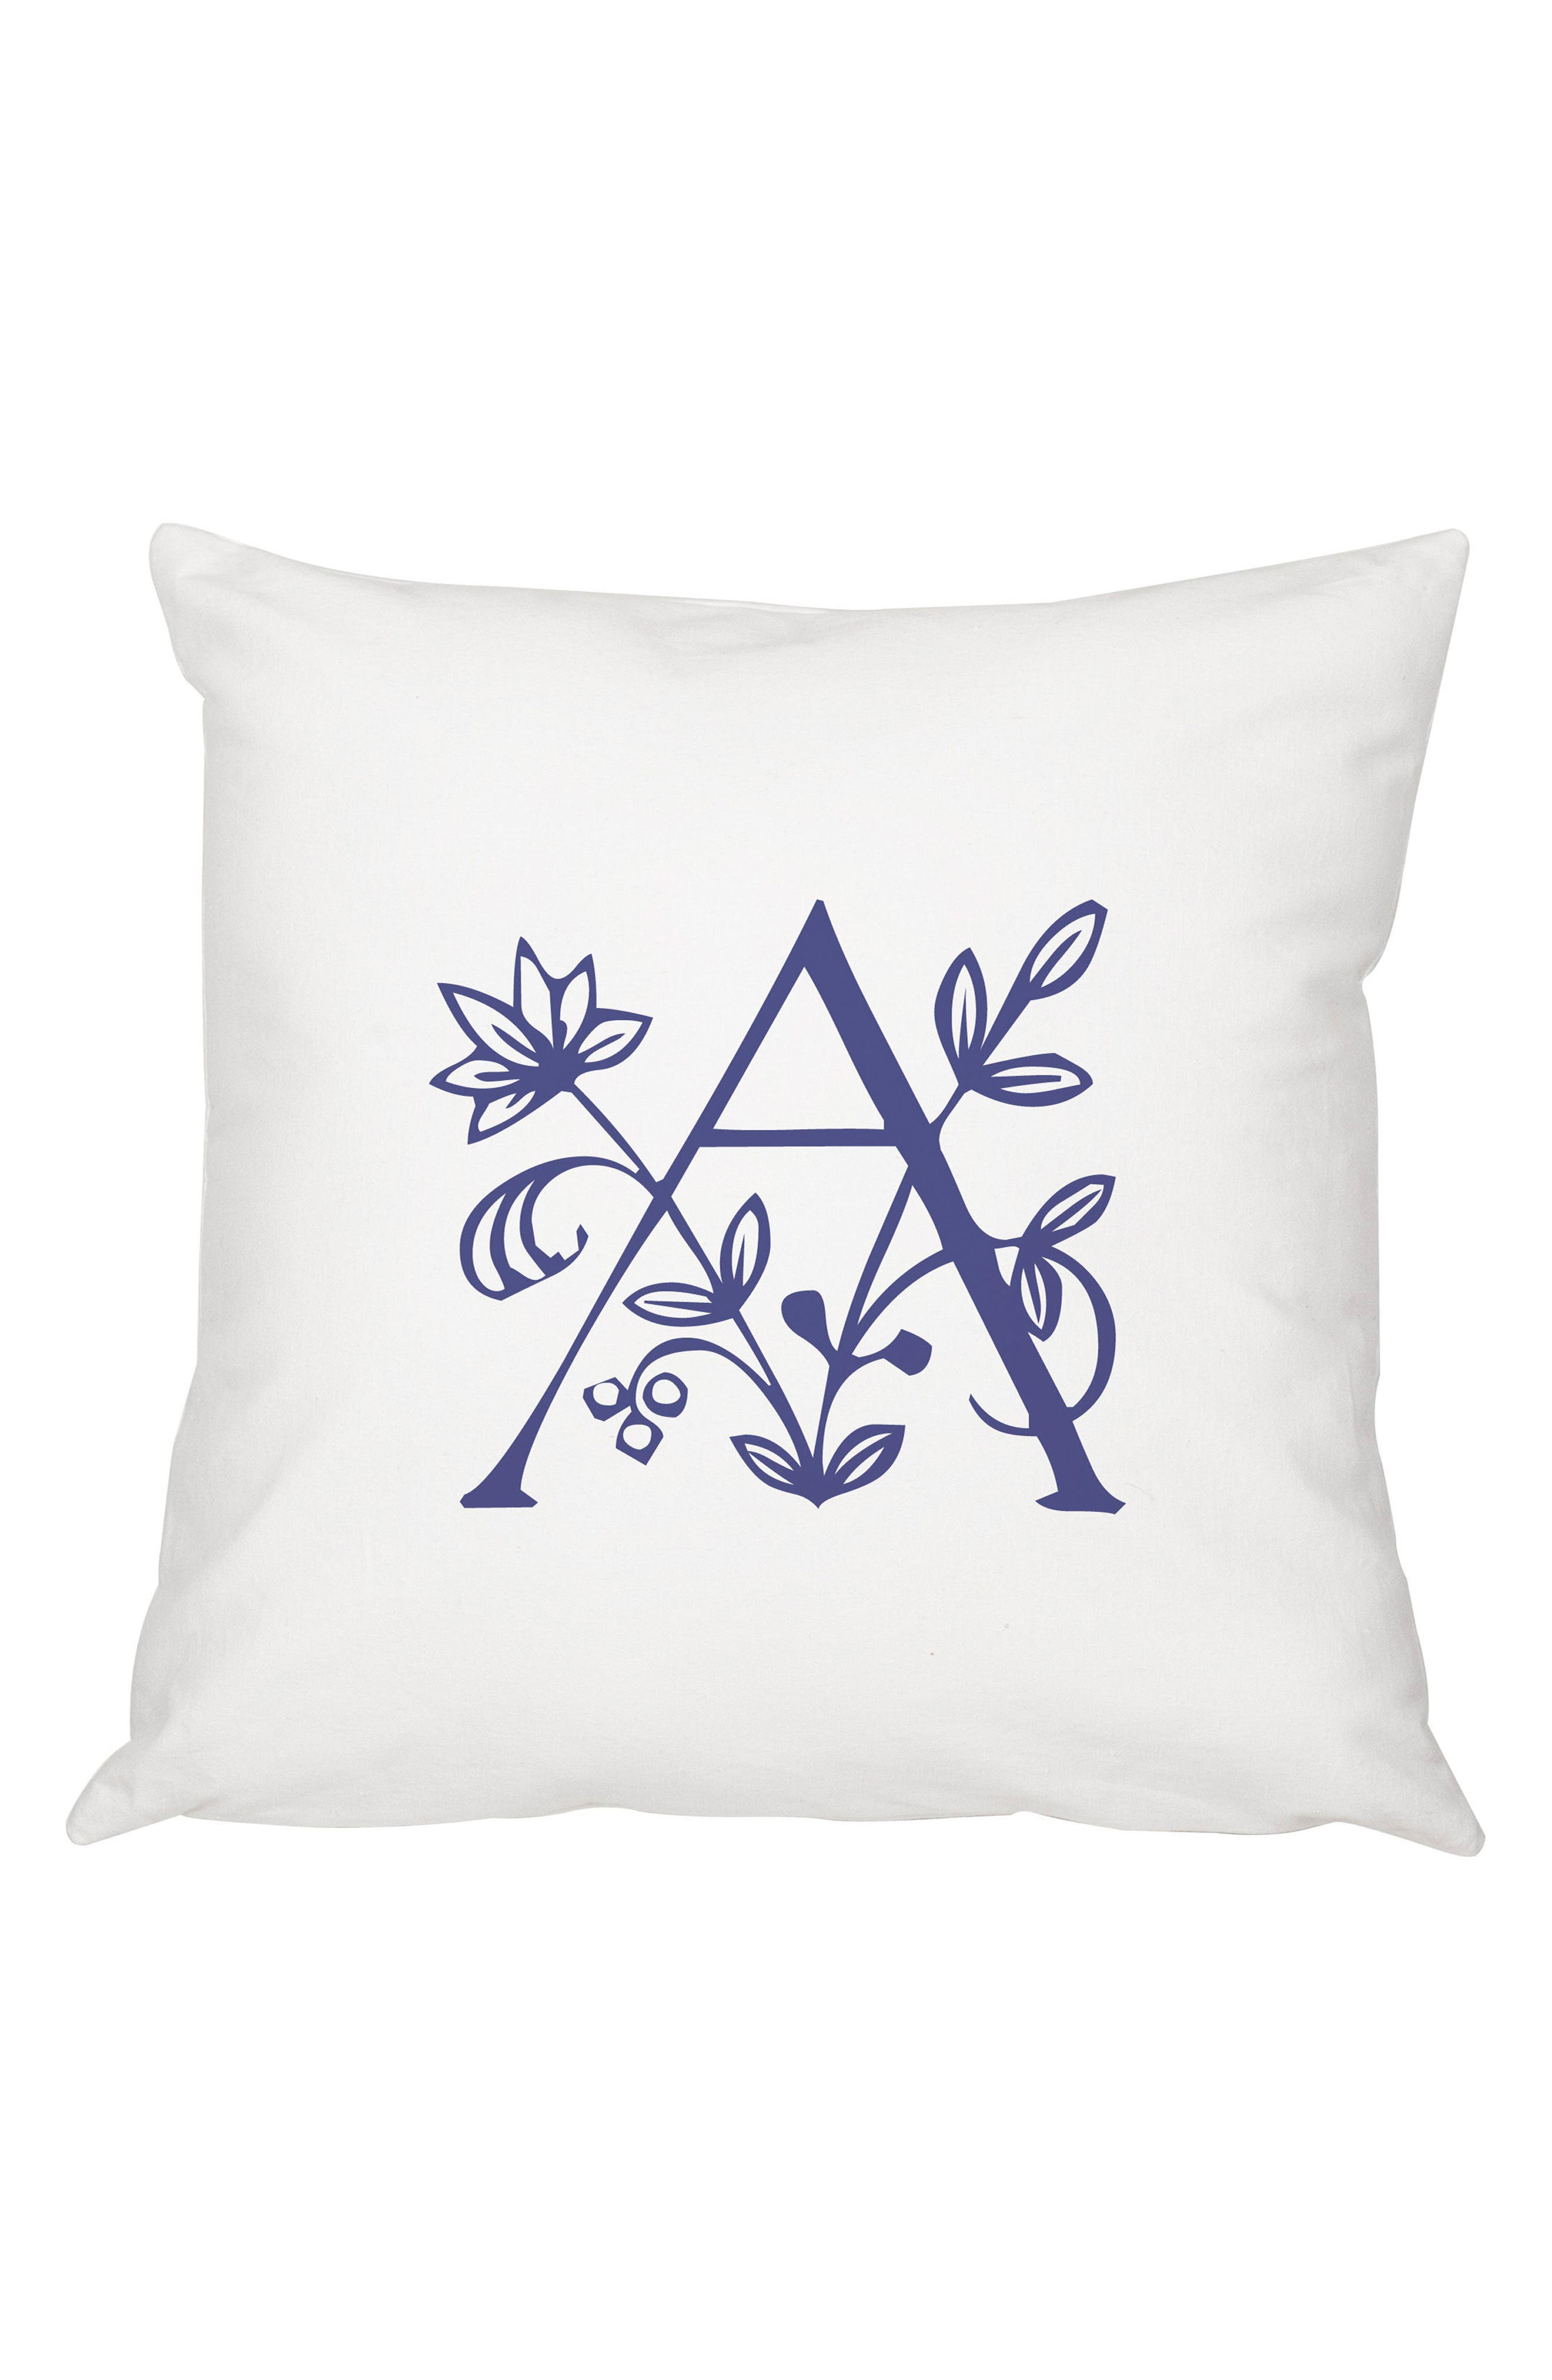 Cathy's Concepts Floral Monogram Accent Pillow